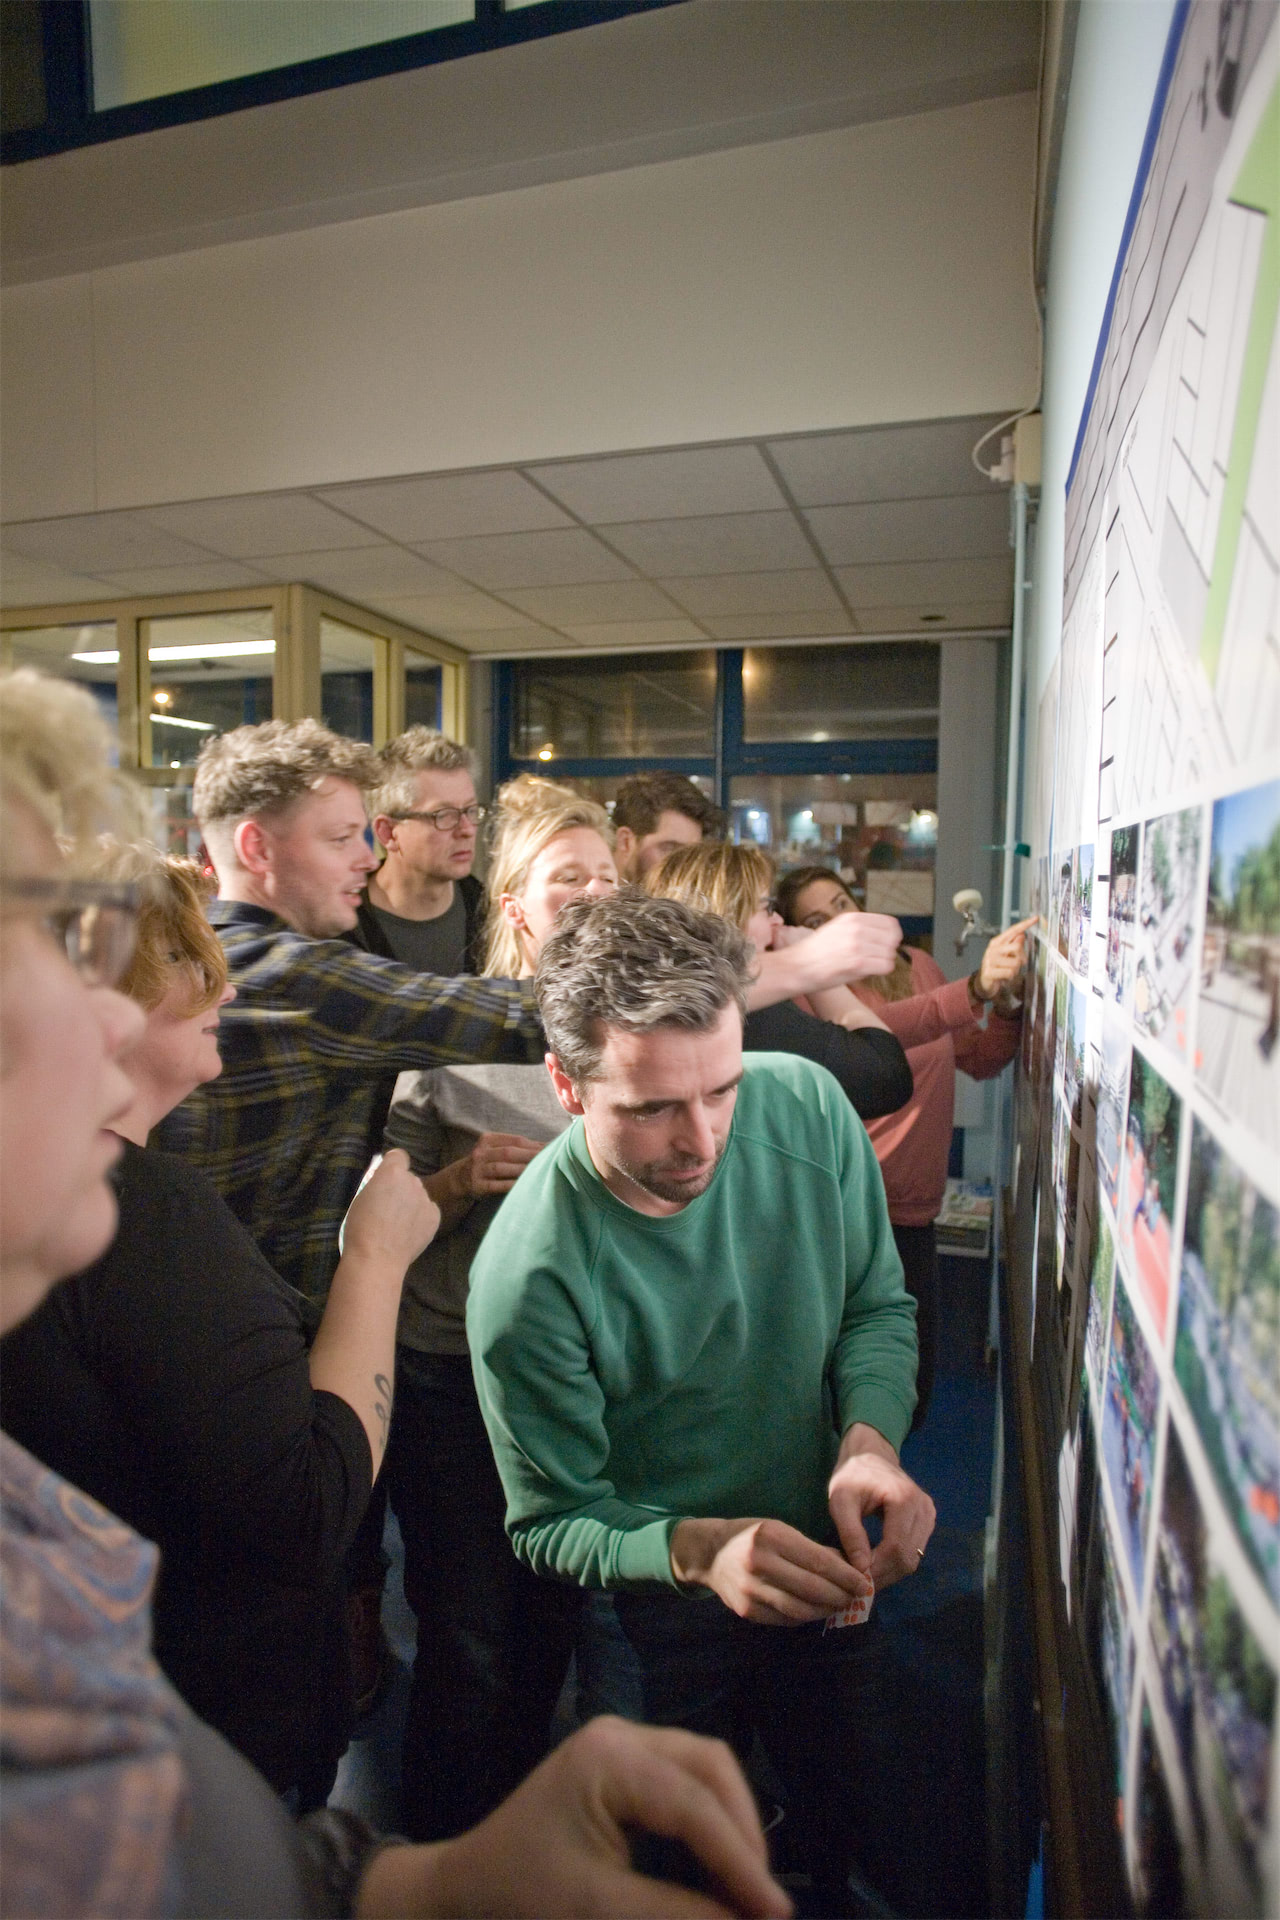 For the first time ever, the City of Amsterdam has given local citizens and stakeholders the opportunity and responsibility for the design of an entire neighbourhood: Klaprozenbuurt. We joined forces with BETA architects and B+B landscape architects to develop and execute a comprehensive participatory design process that culminated in a broadly supported masterplan. In the coming years, this industrial area will be transformed into a vibrant, densified part of the city with ample living, recreational and work opportunities. Over 2,200 new homes - 40% social, 40% mid-priced and 20% private housing - will be built by 2035.